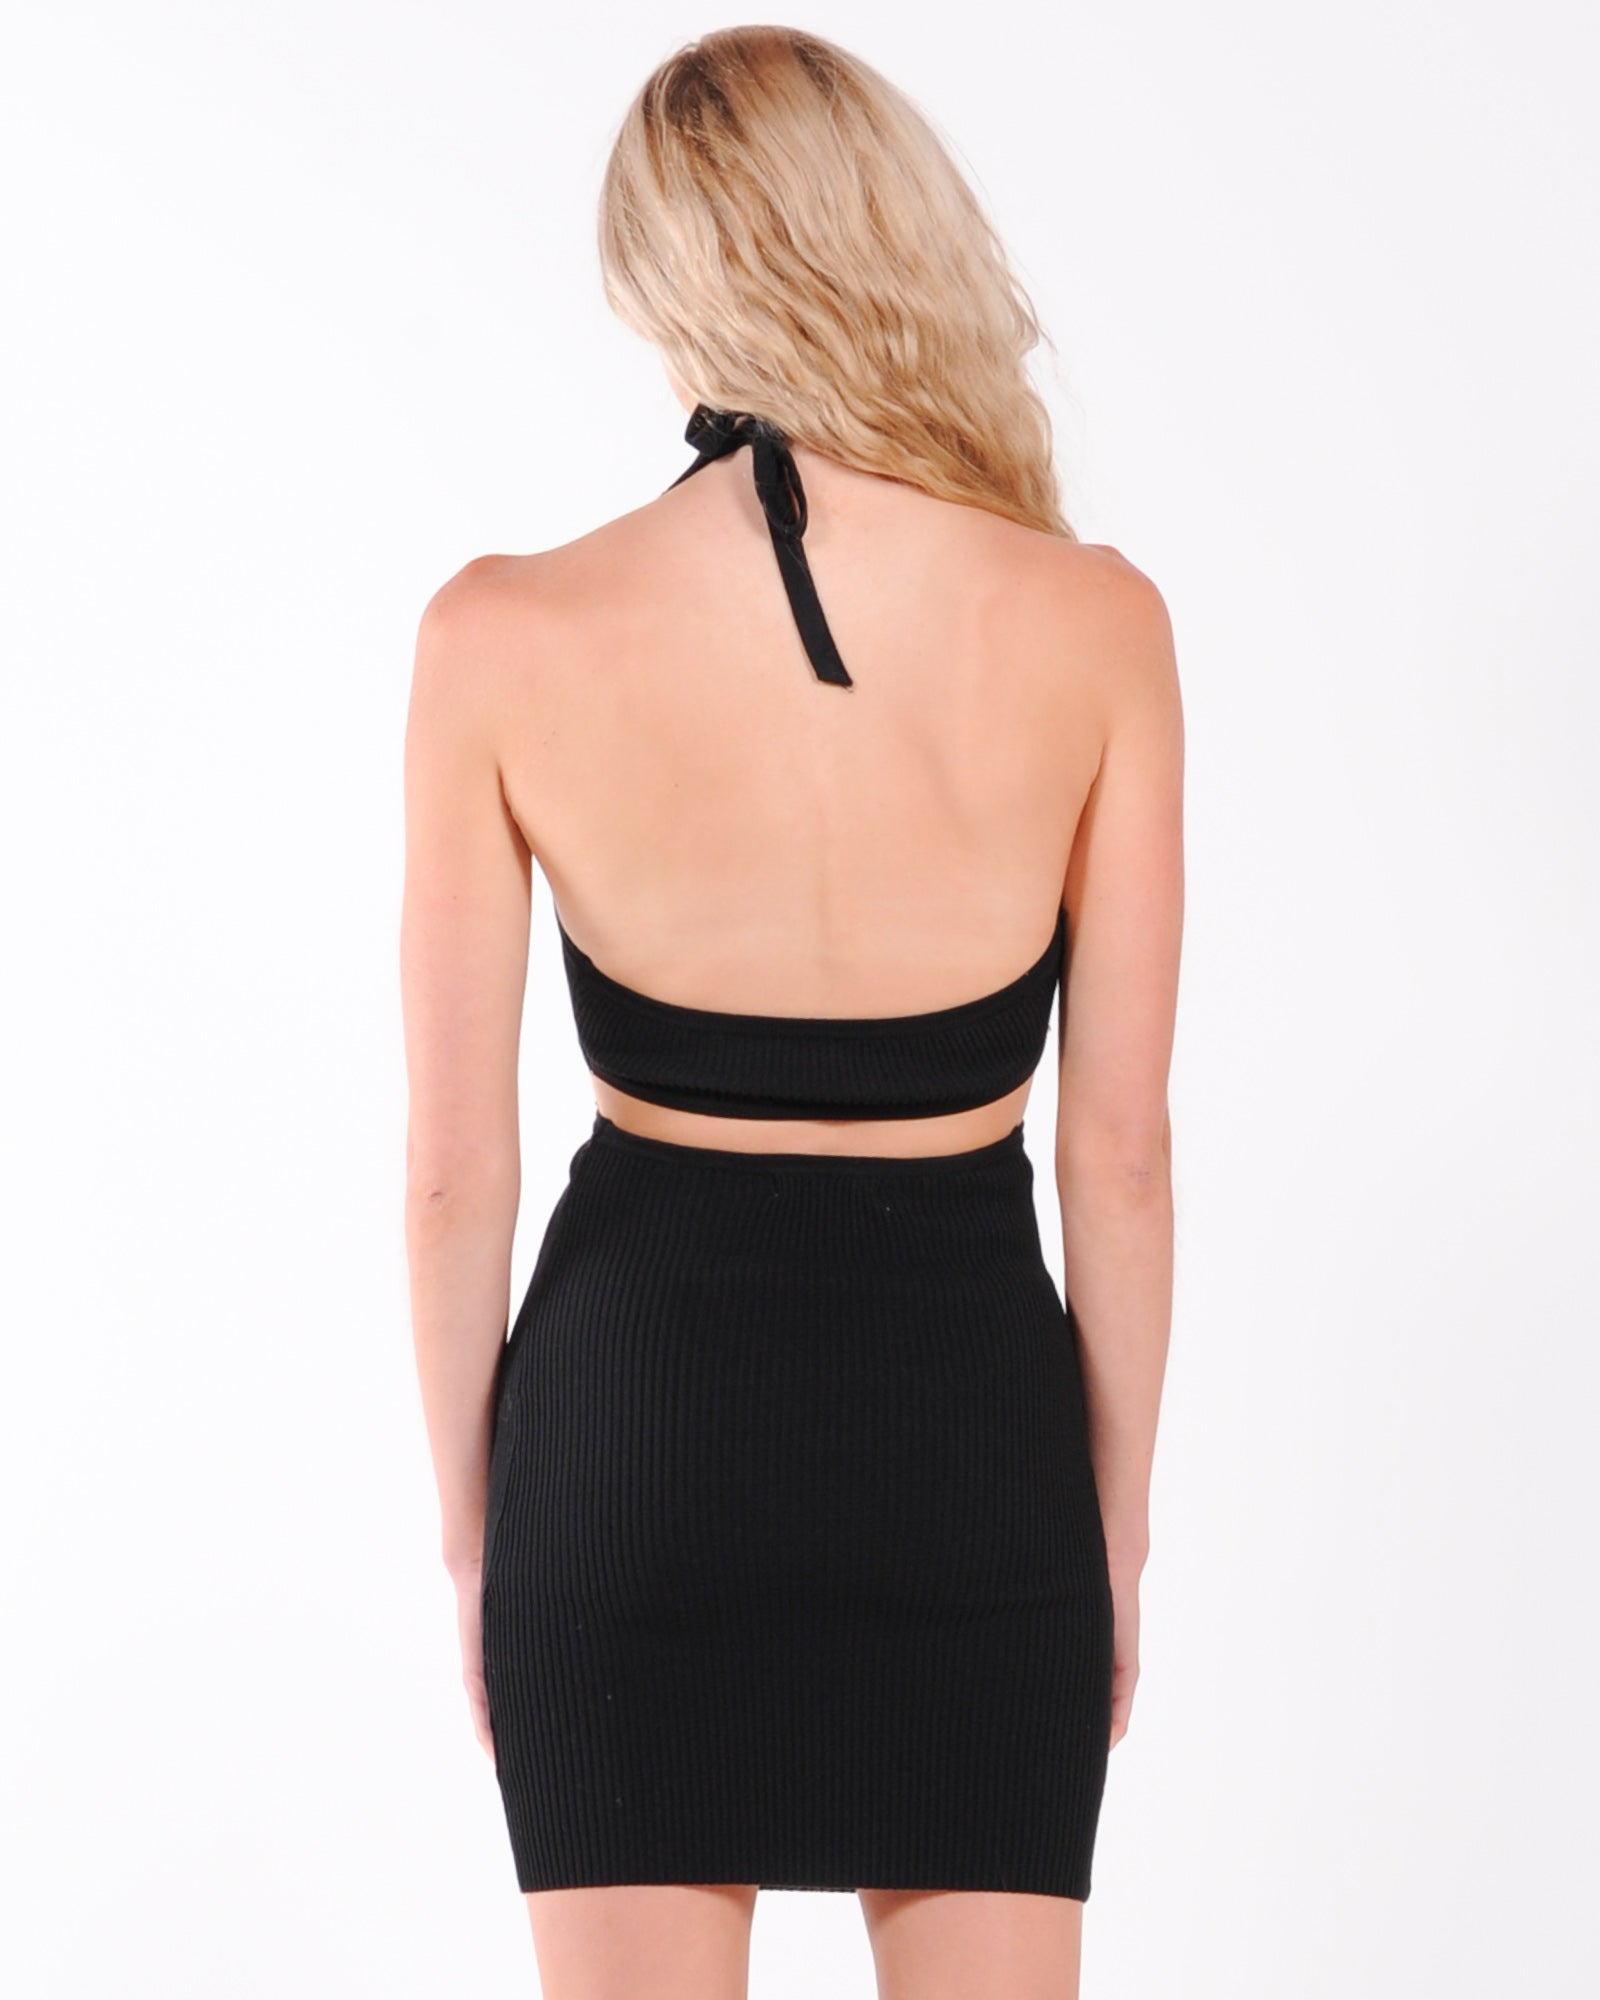 Love At First Sight Midi Dress - Black